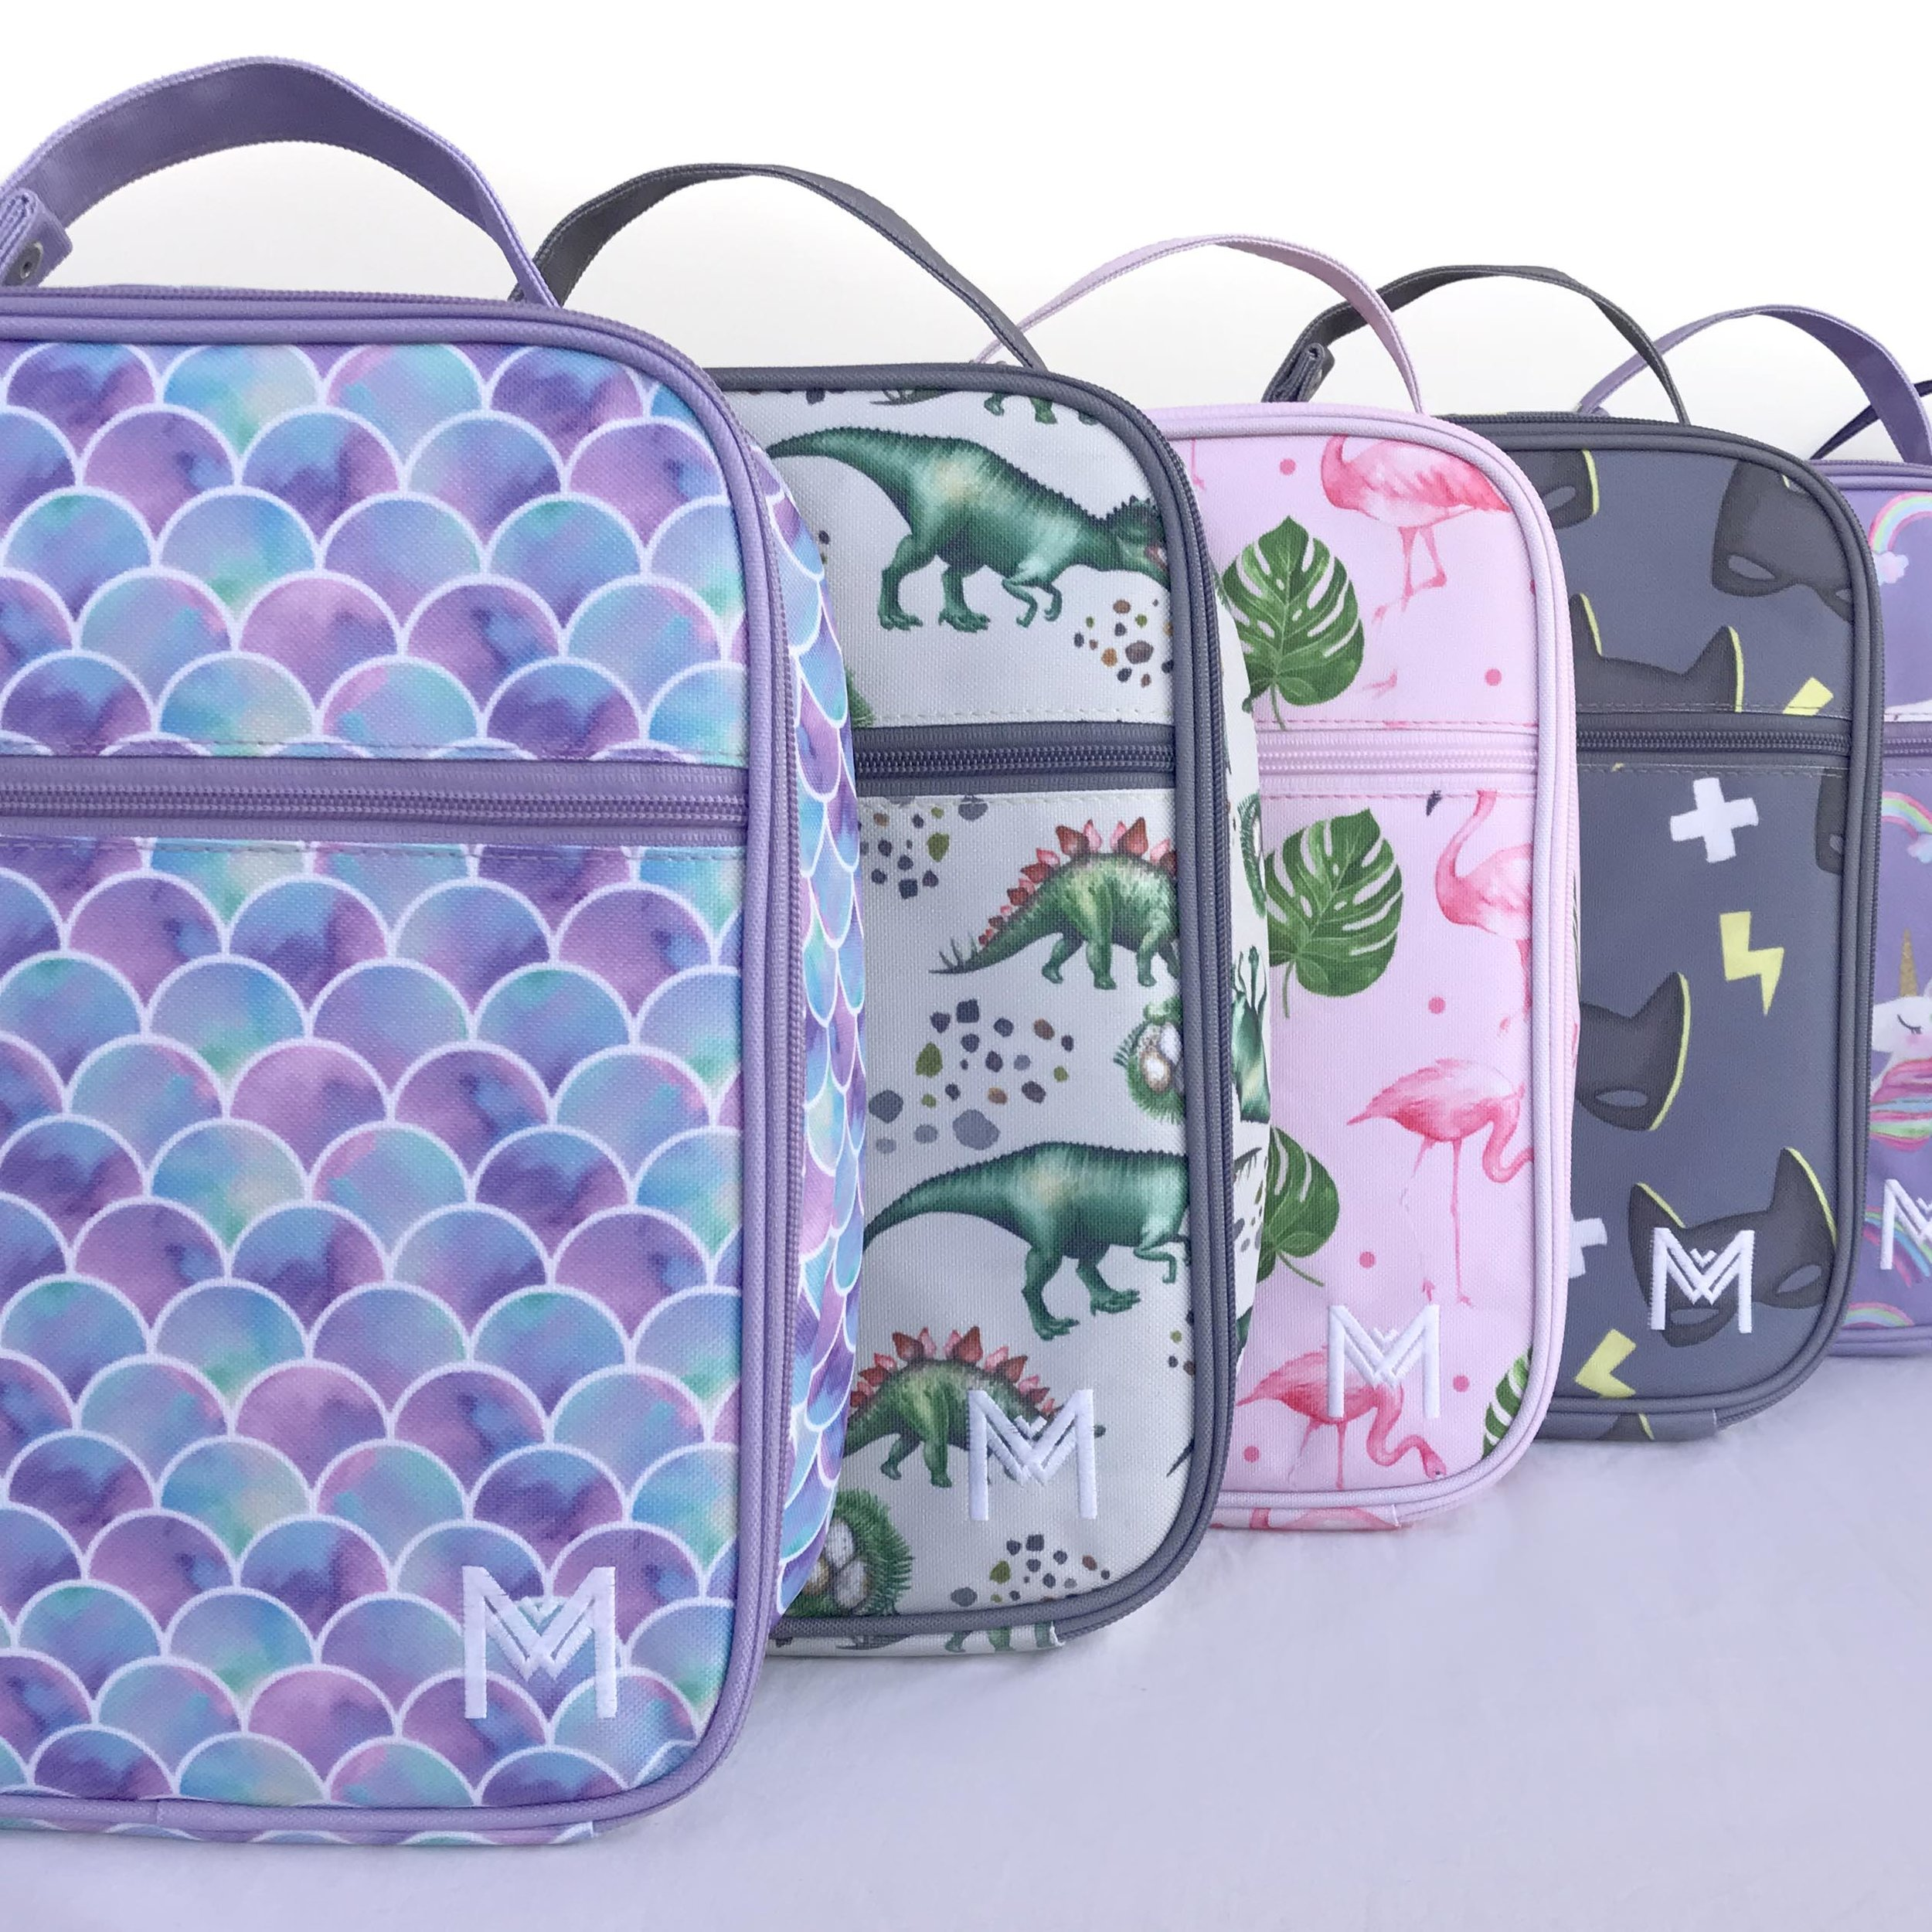 Montii Lunchbags